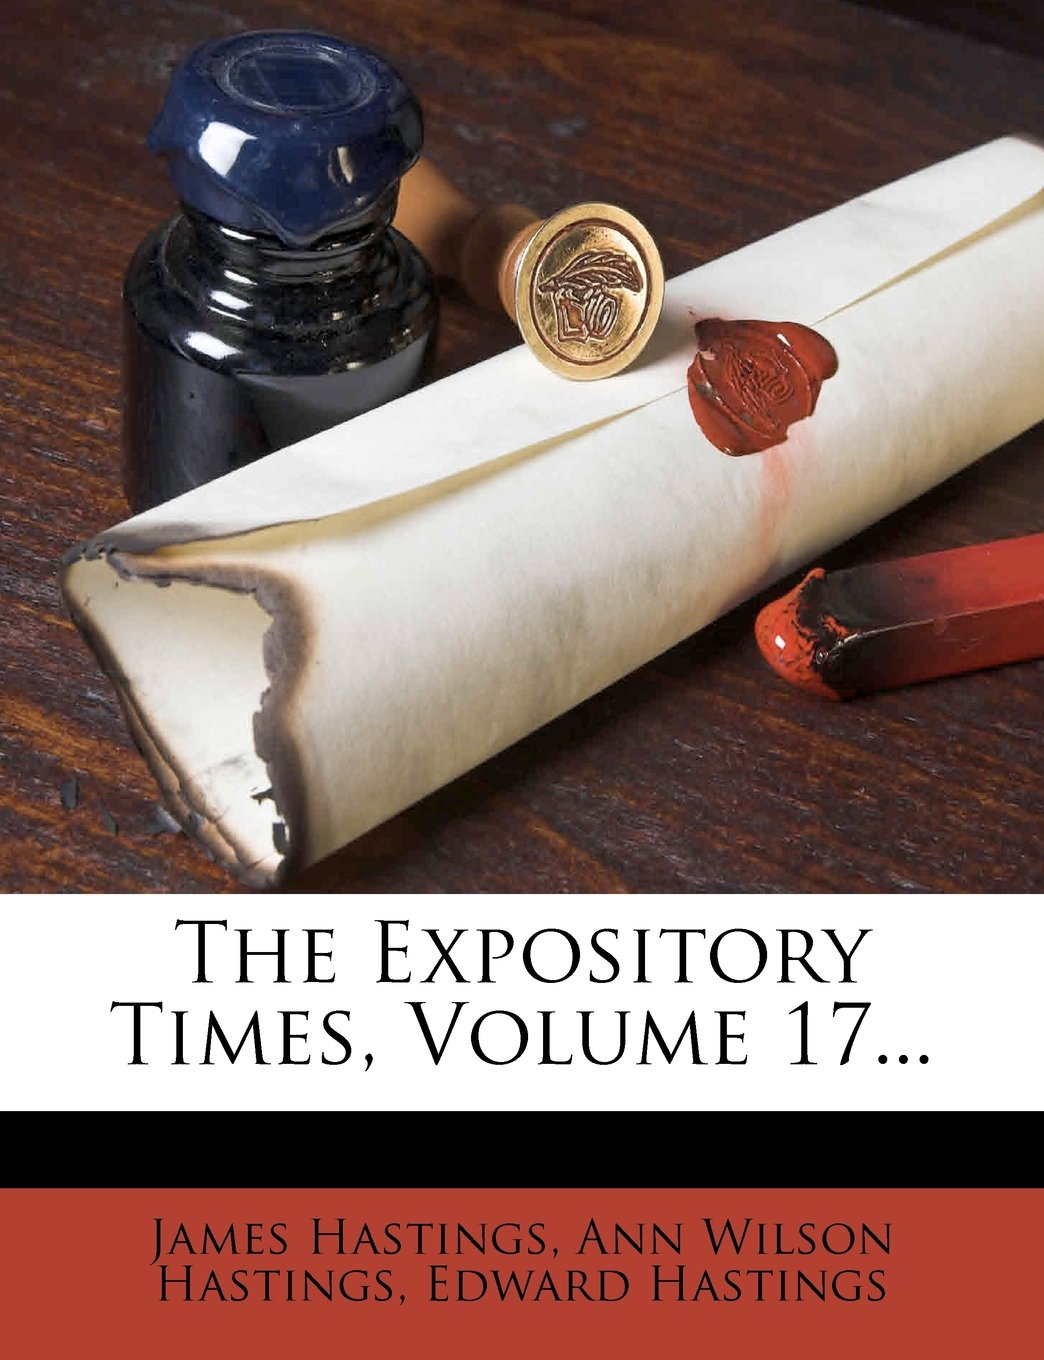 The Expository Times, Volume 17... PDF